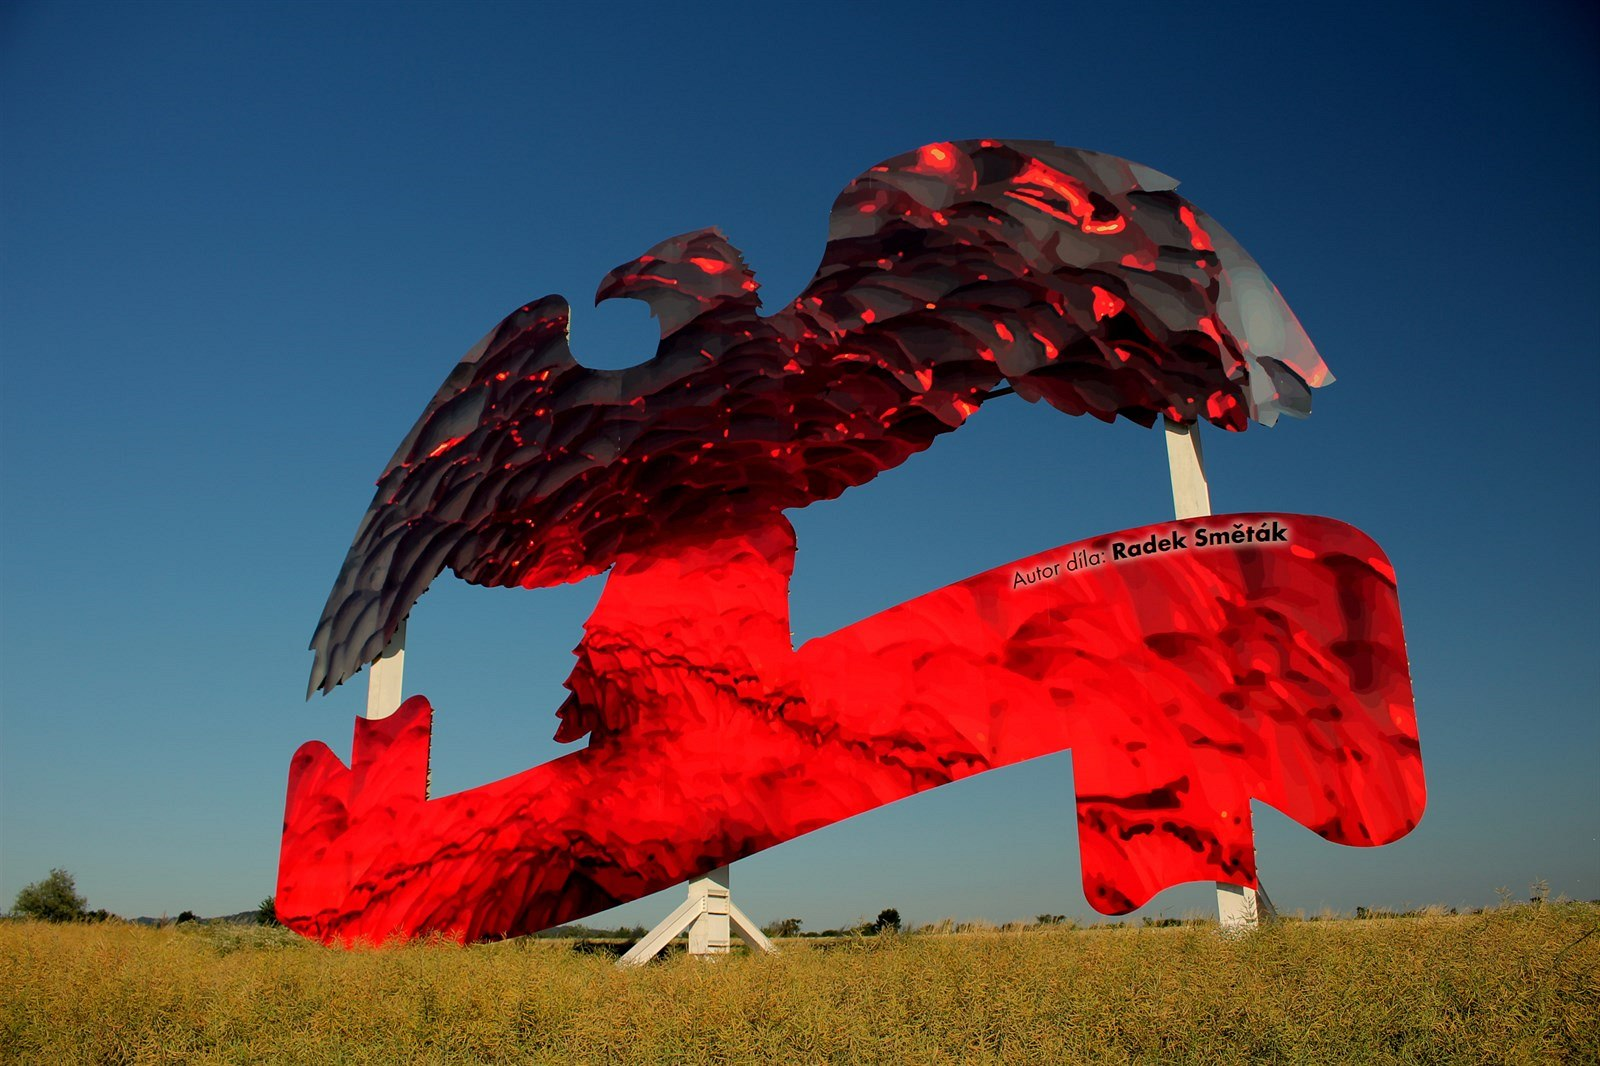 Mattoni's highway eagles have become roadside art to skirt Czech anti-advertising laws